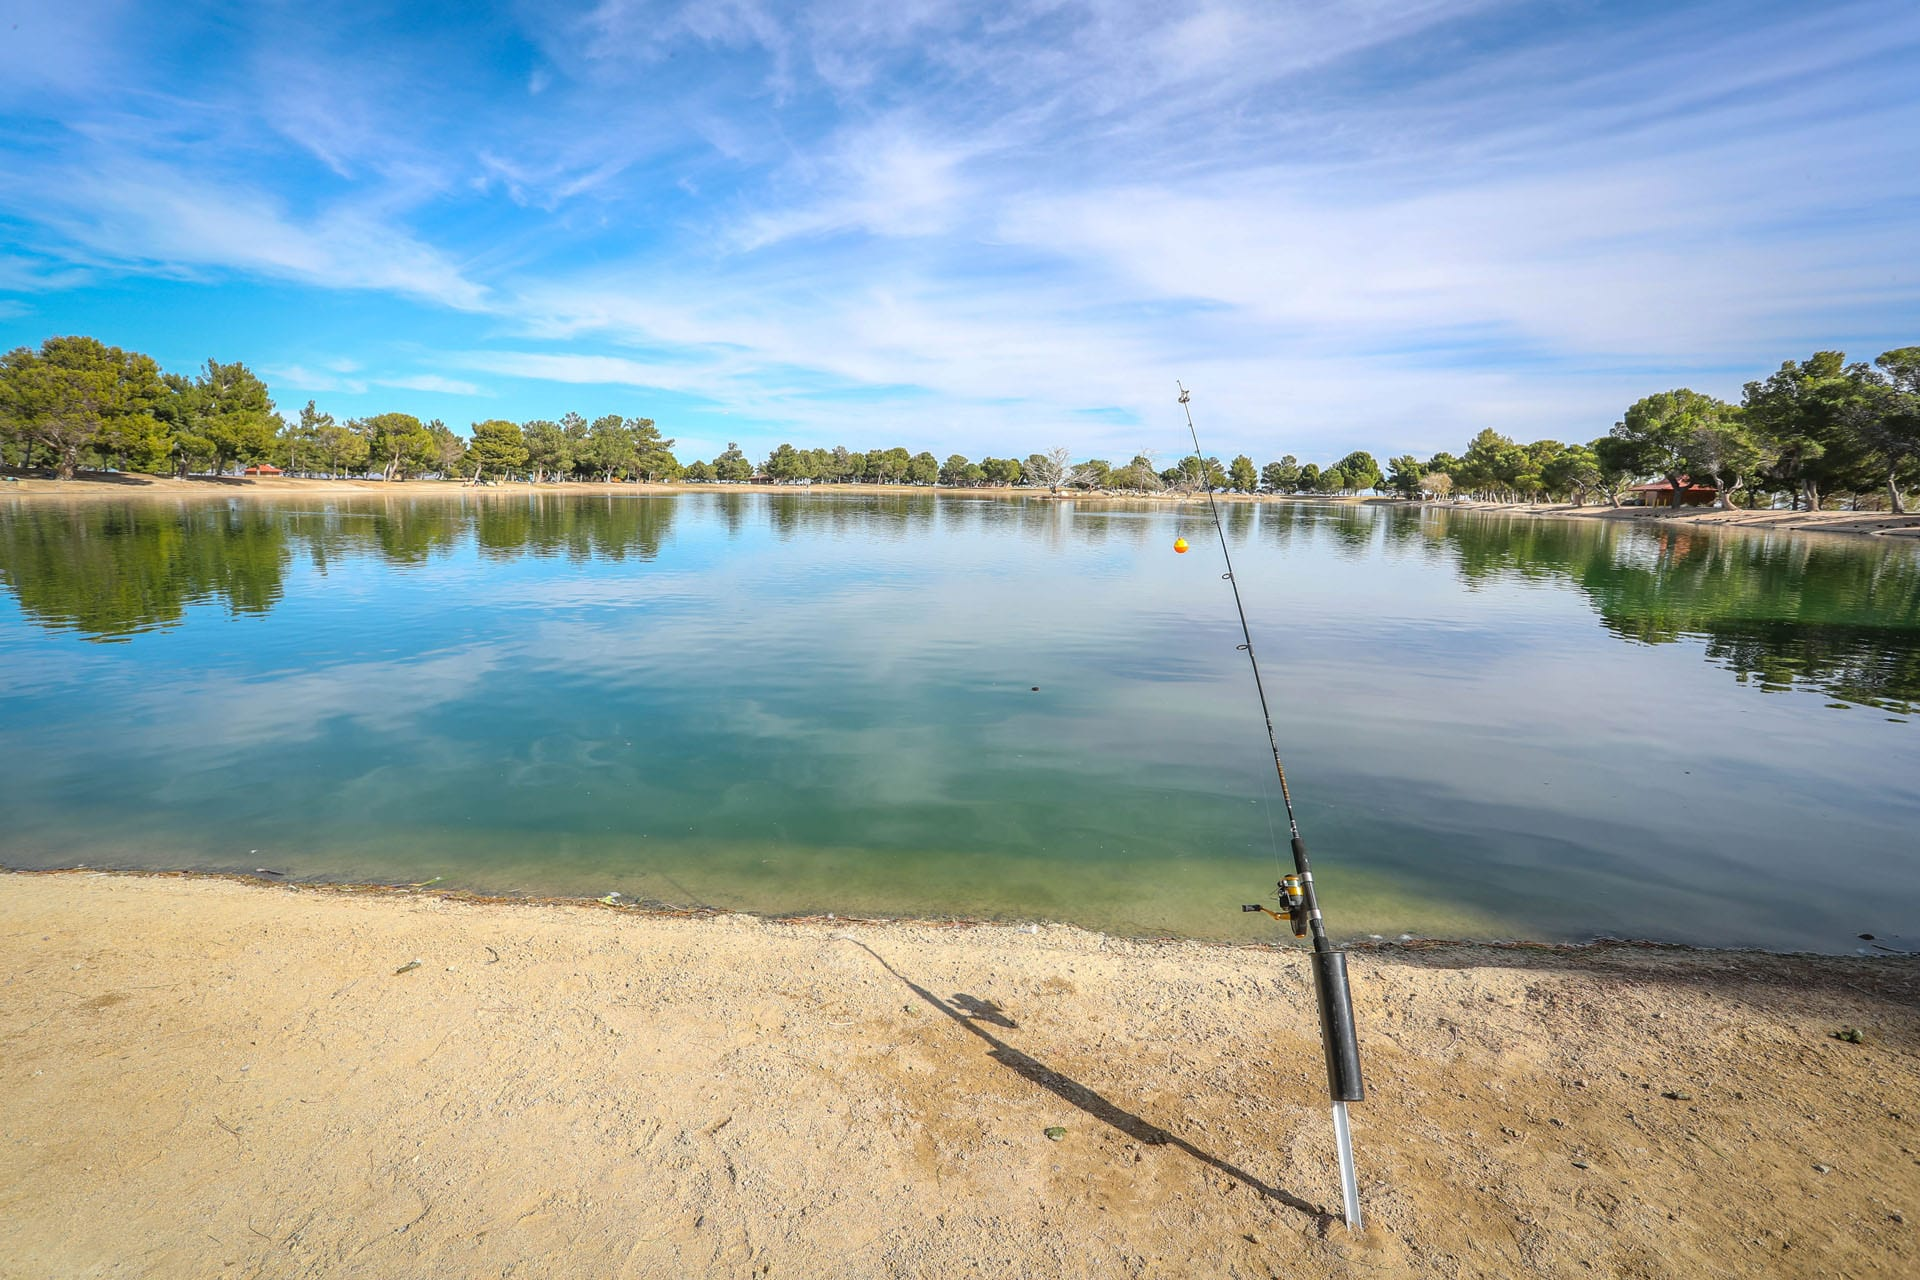 Lake with propped up fishing pole